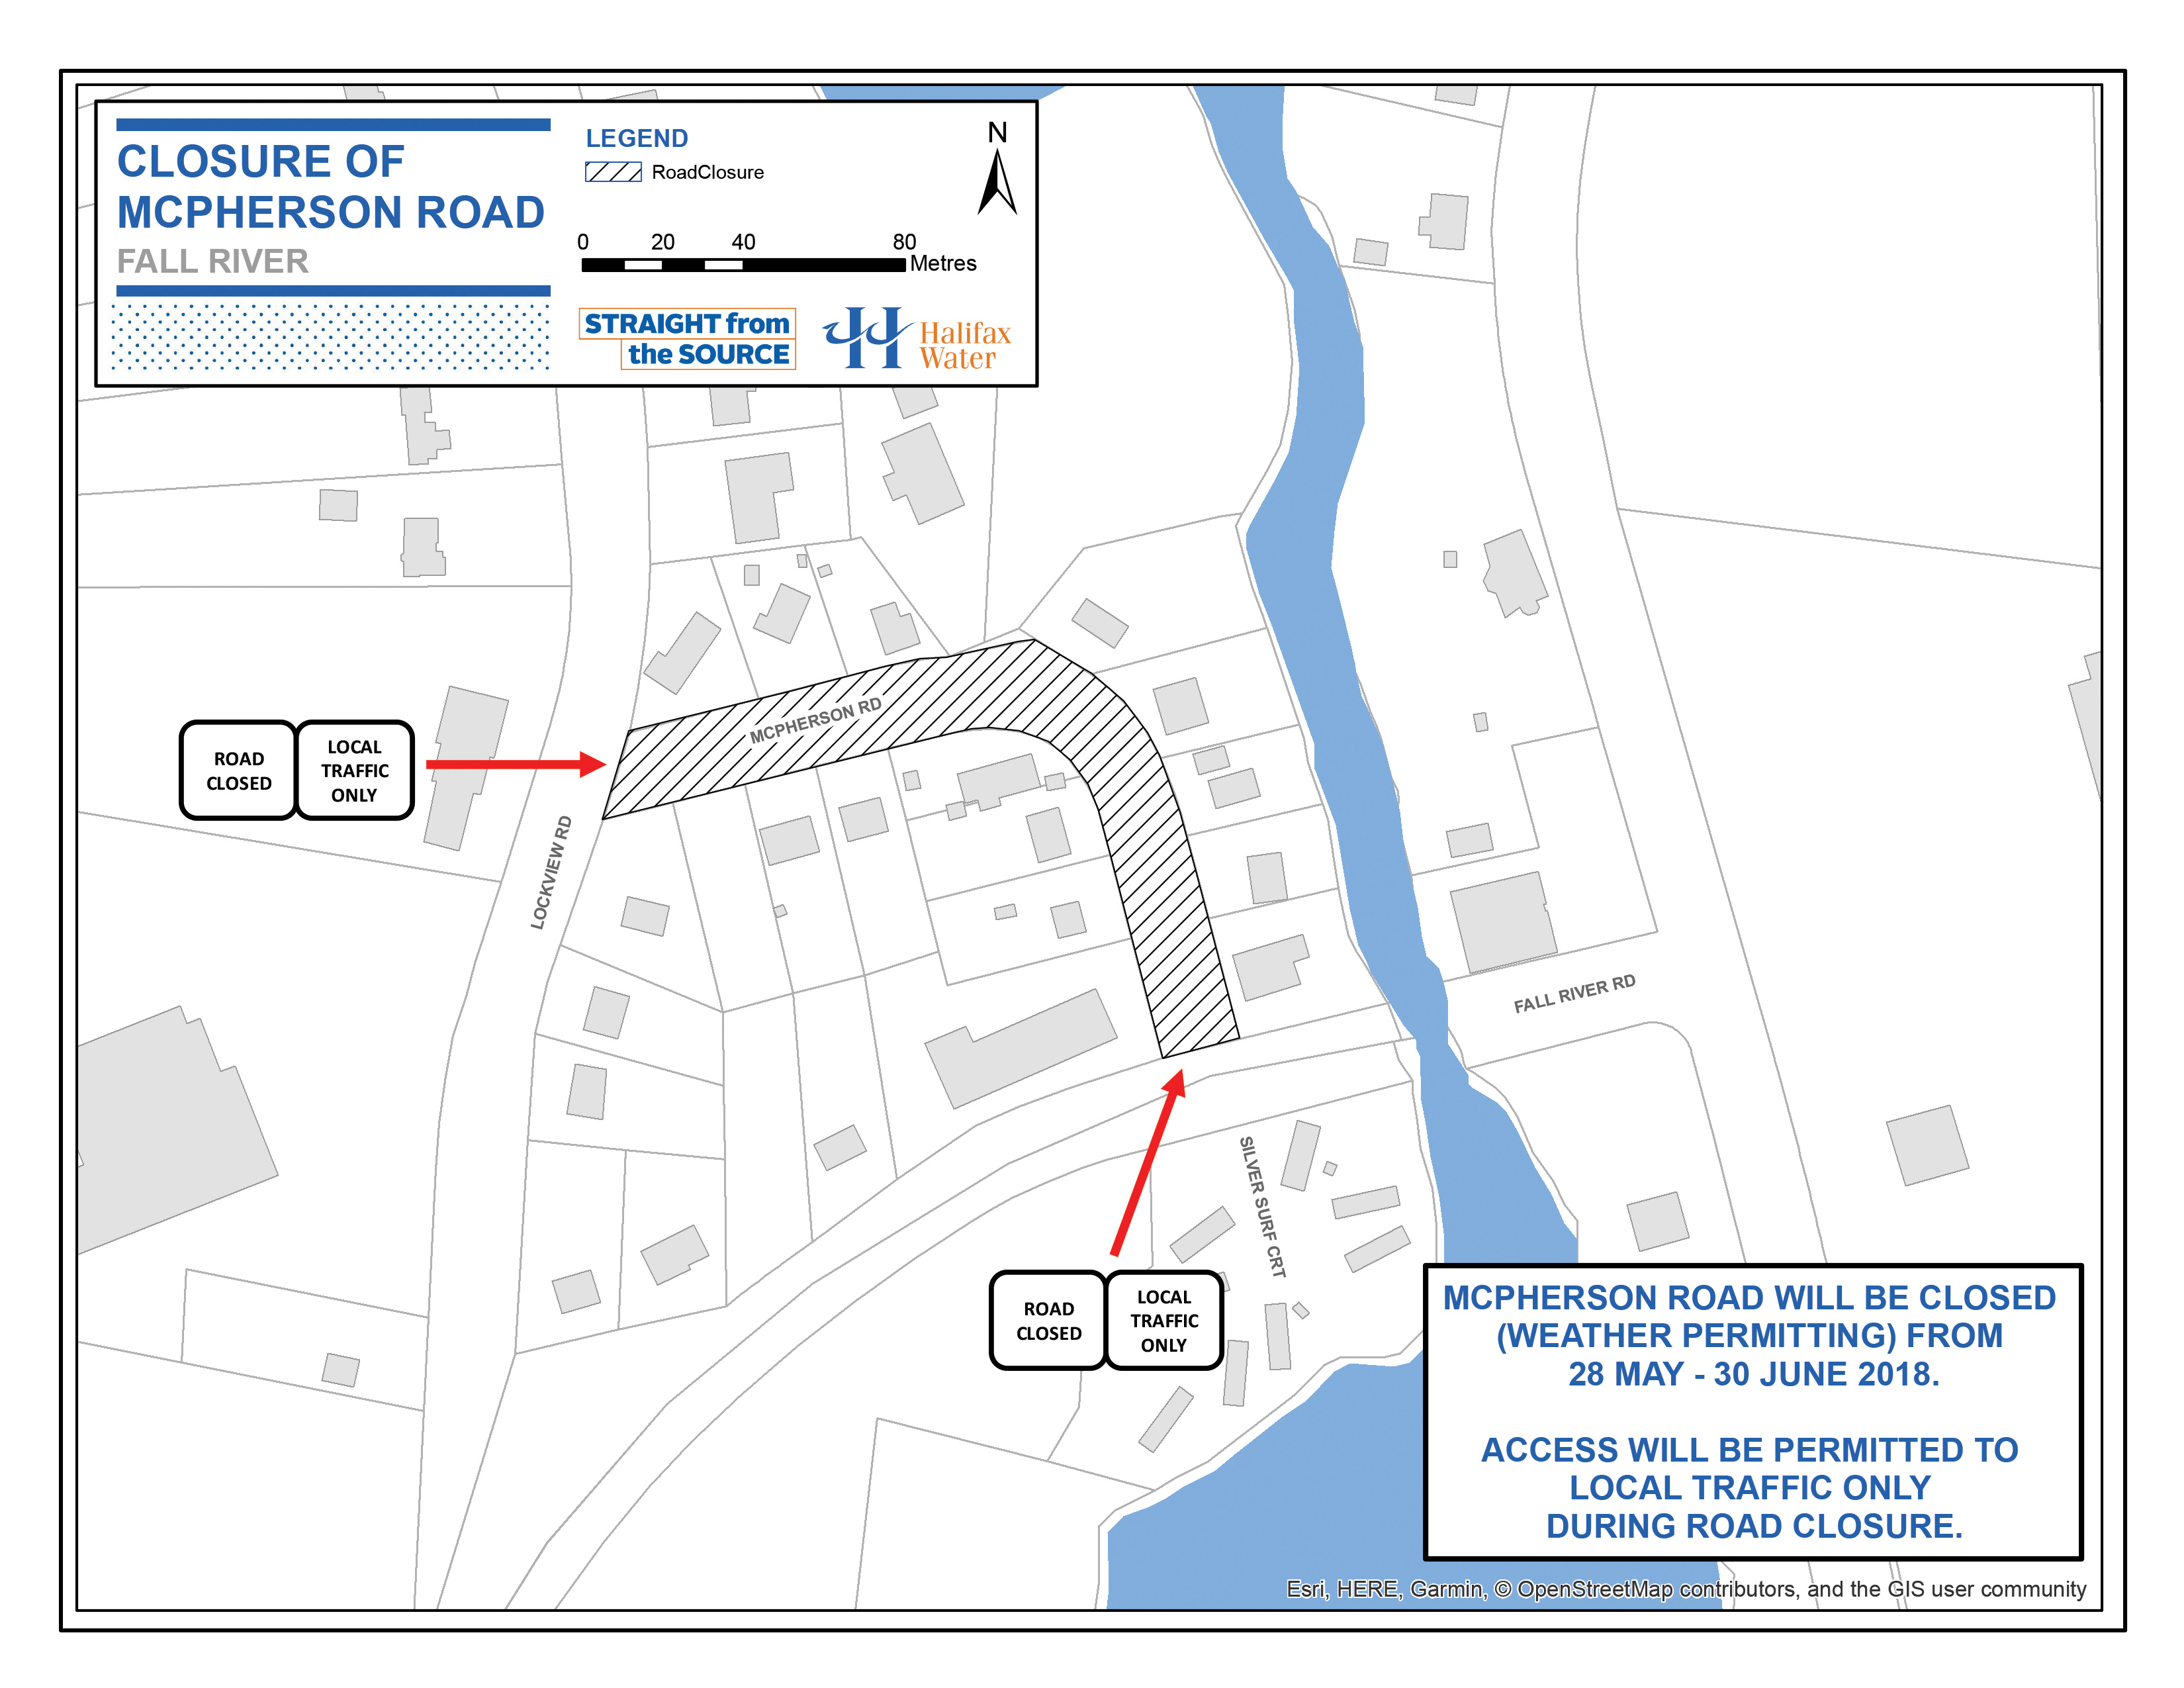 Map of road closure area.